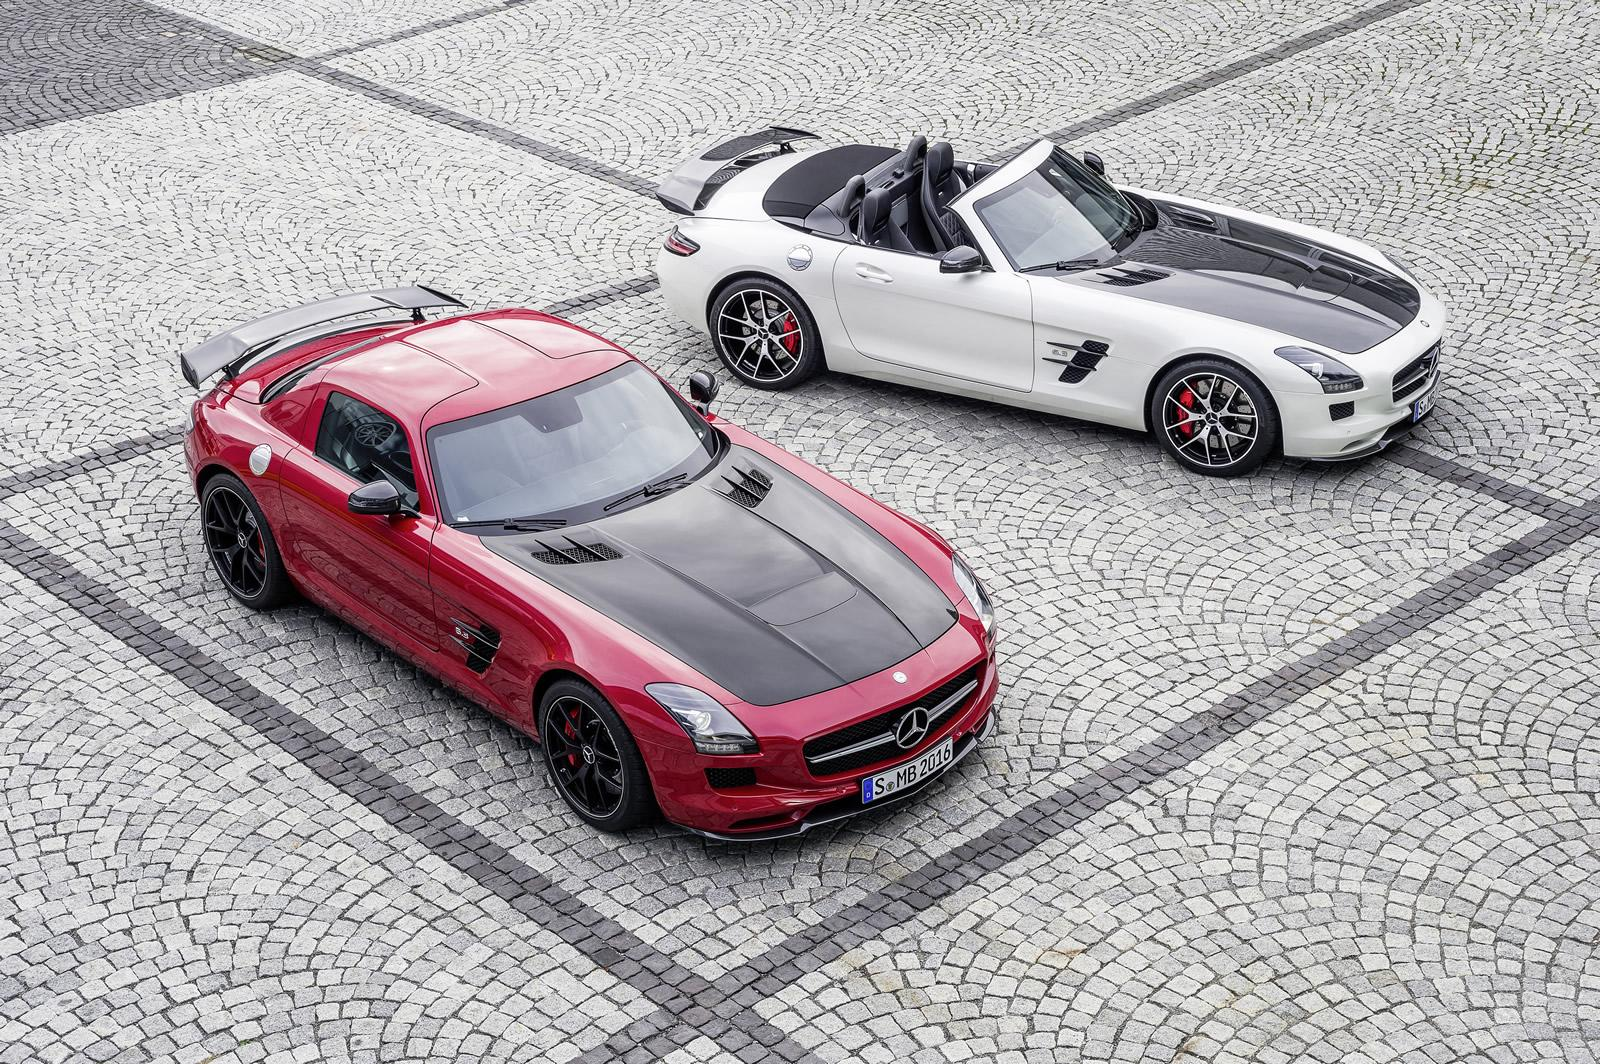 Mercedes-Benz Sls Amg Gt Final Edition #13